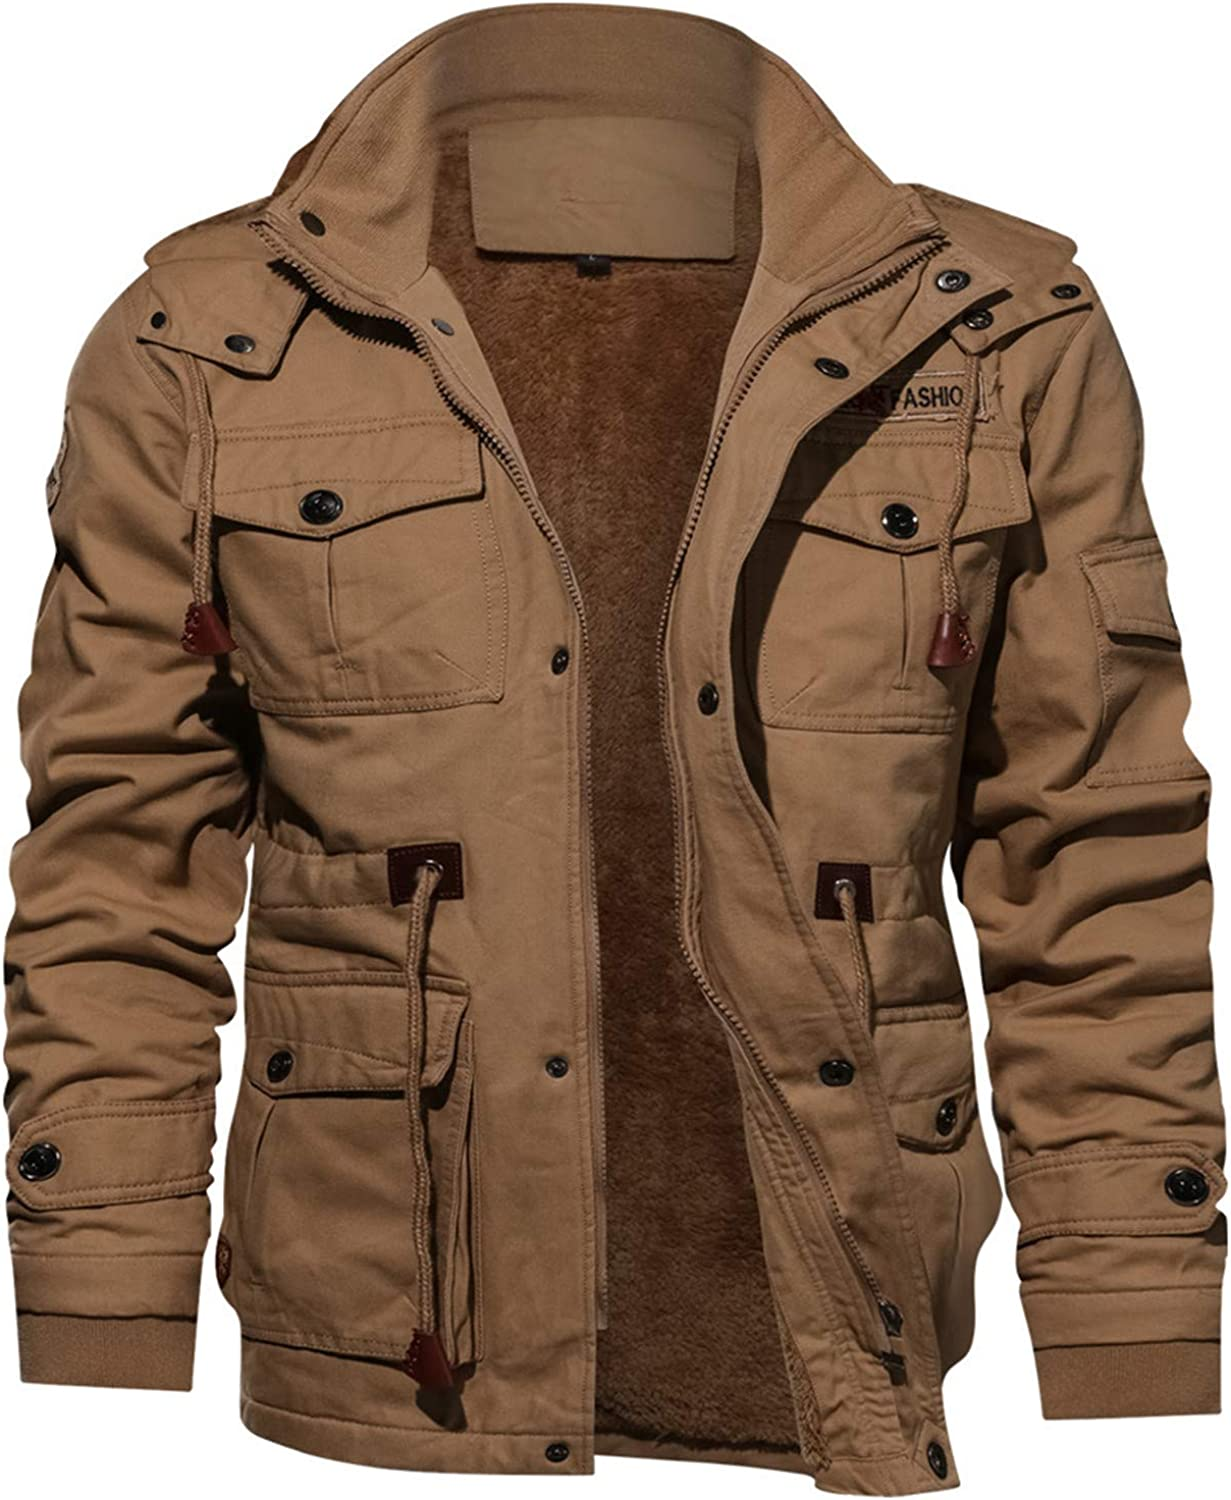 Soluo Men's Faux Leather Jacket Casual Brown Motorcycle Jacket Outerwear Windbreaker with Removable Hood (Khaki,Medium)